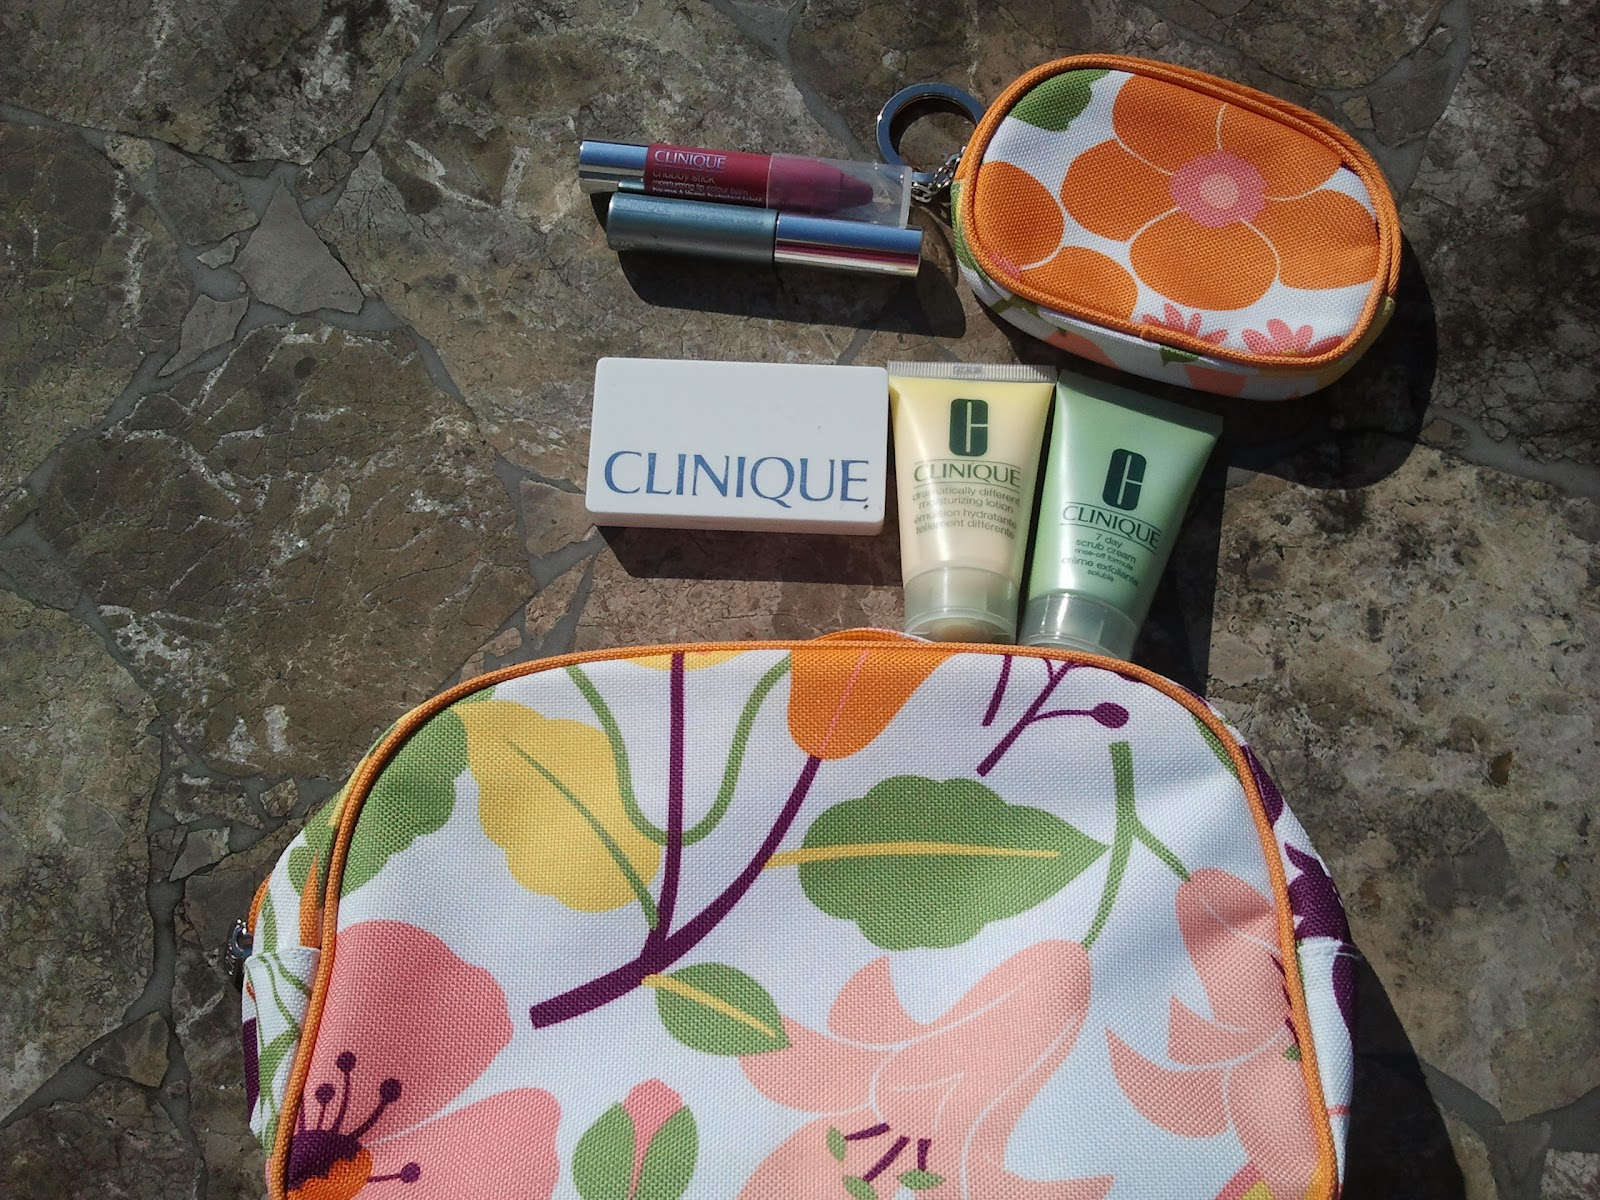 Clinique Travel Bag